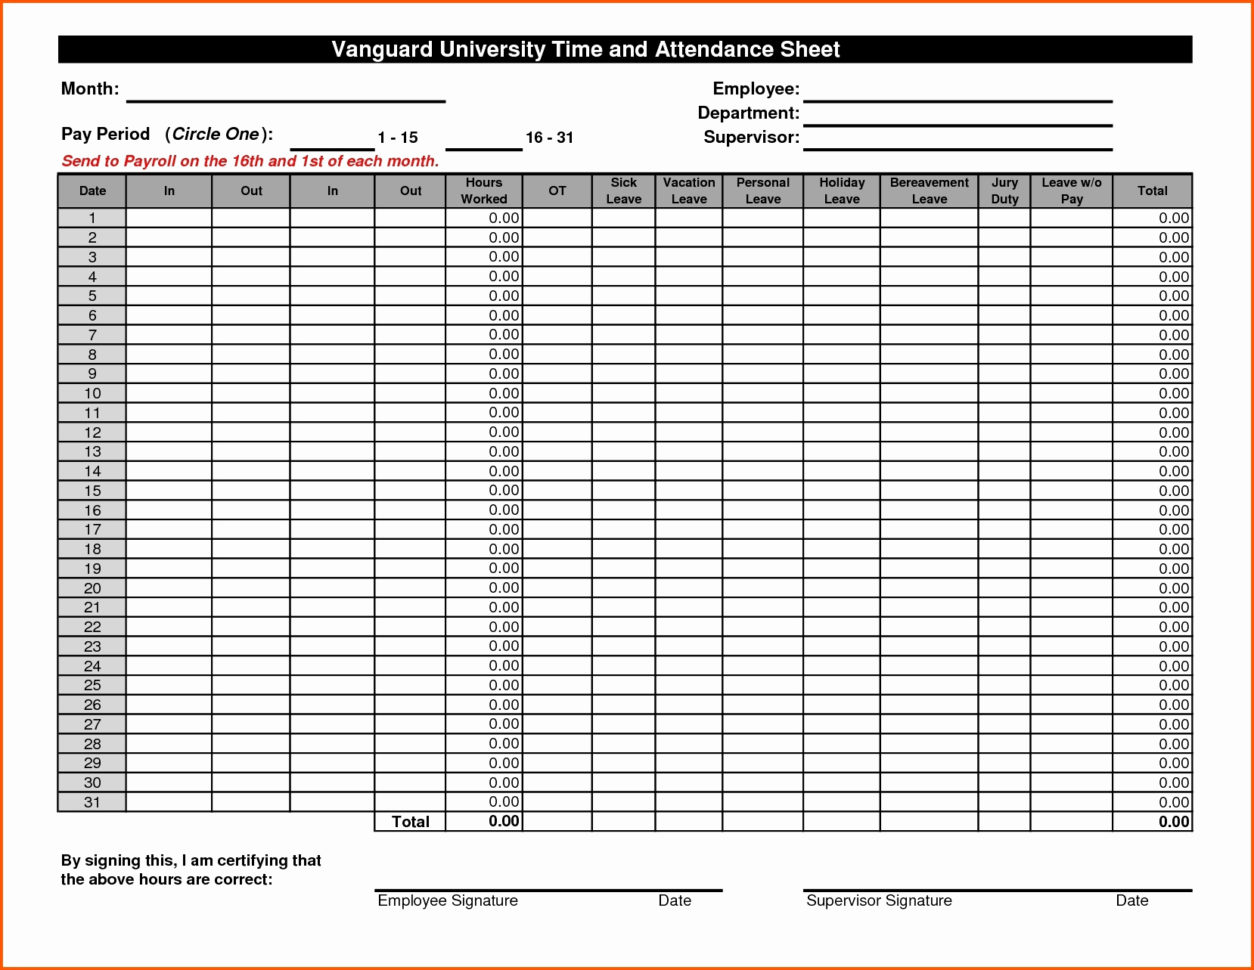 apartment expenses spreadsheet  Apartment Expenses Spreadsheet For Apartment Comparison Spreadsheet Template  Sasolo.annafora.co Apartment Expenses Spreadsheet Printable Spreadshee